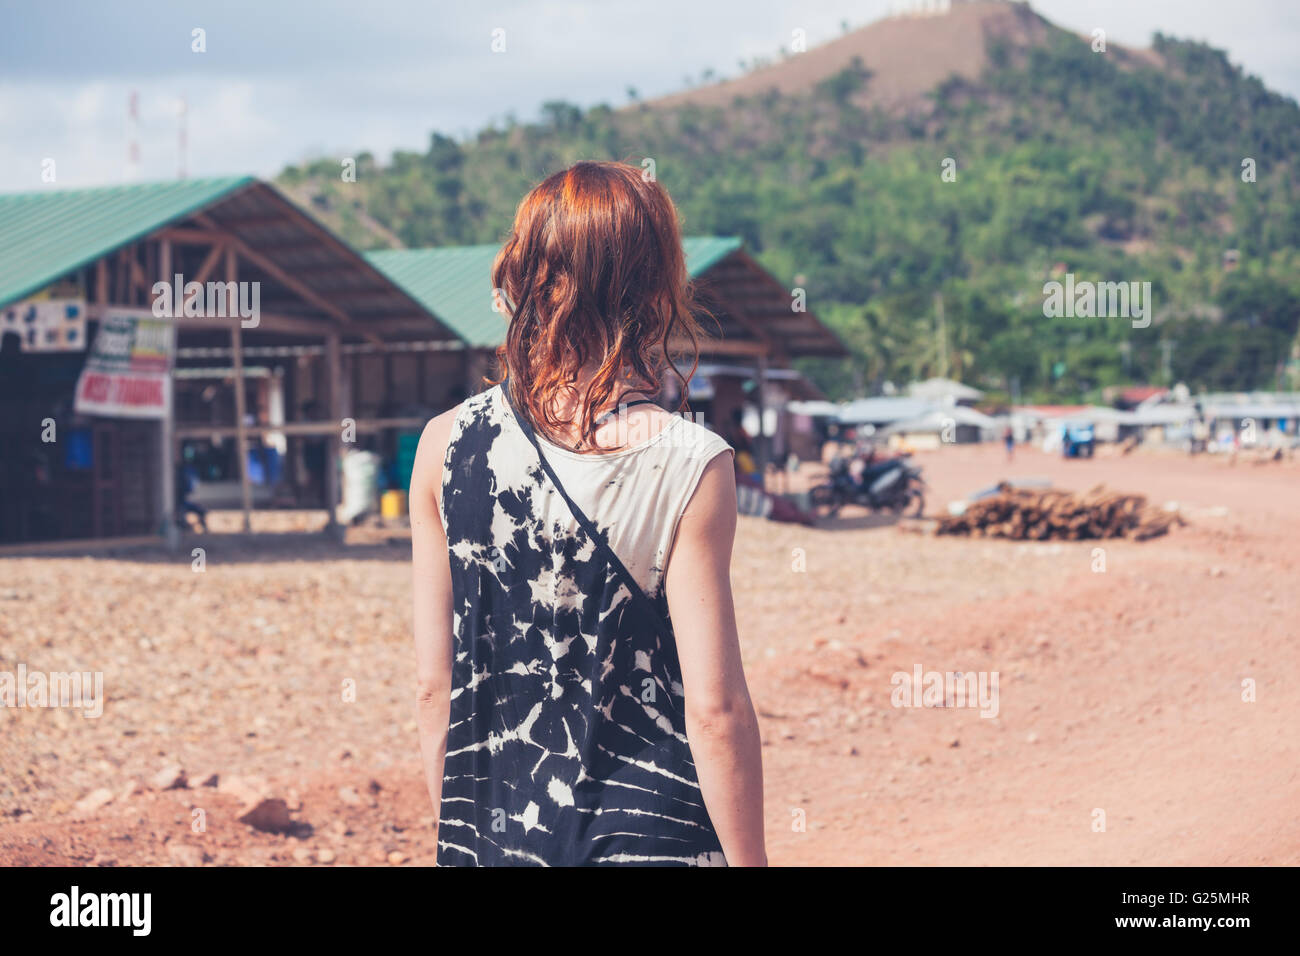 A young caucasian woman is walking around a small town in a developing country - Stock Image